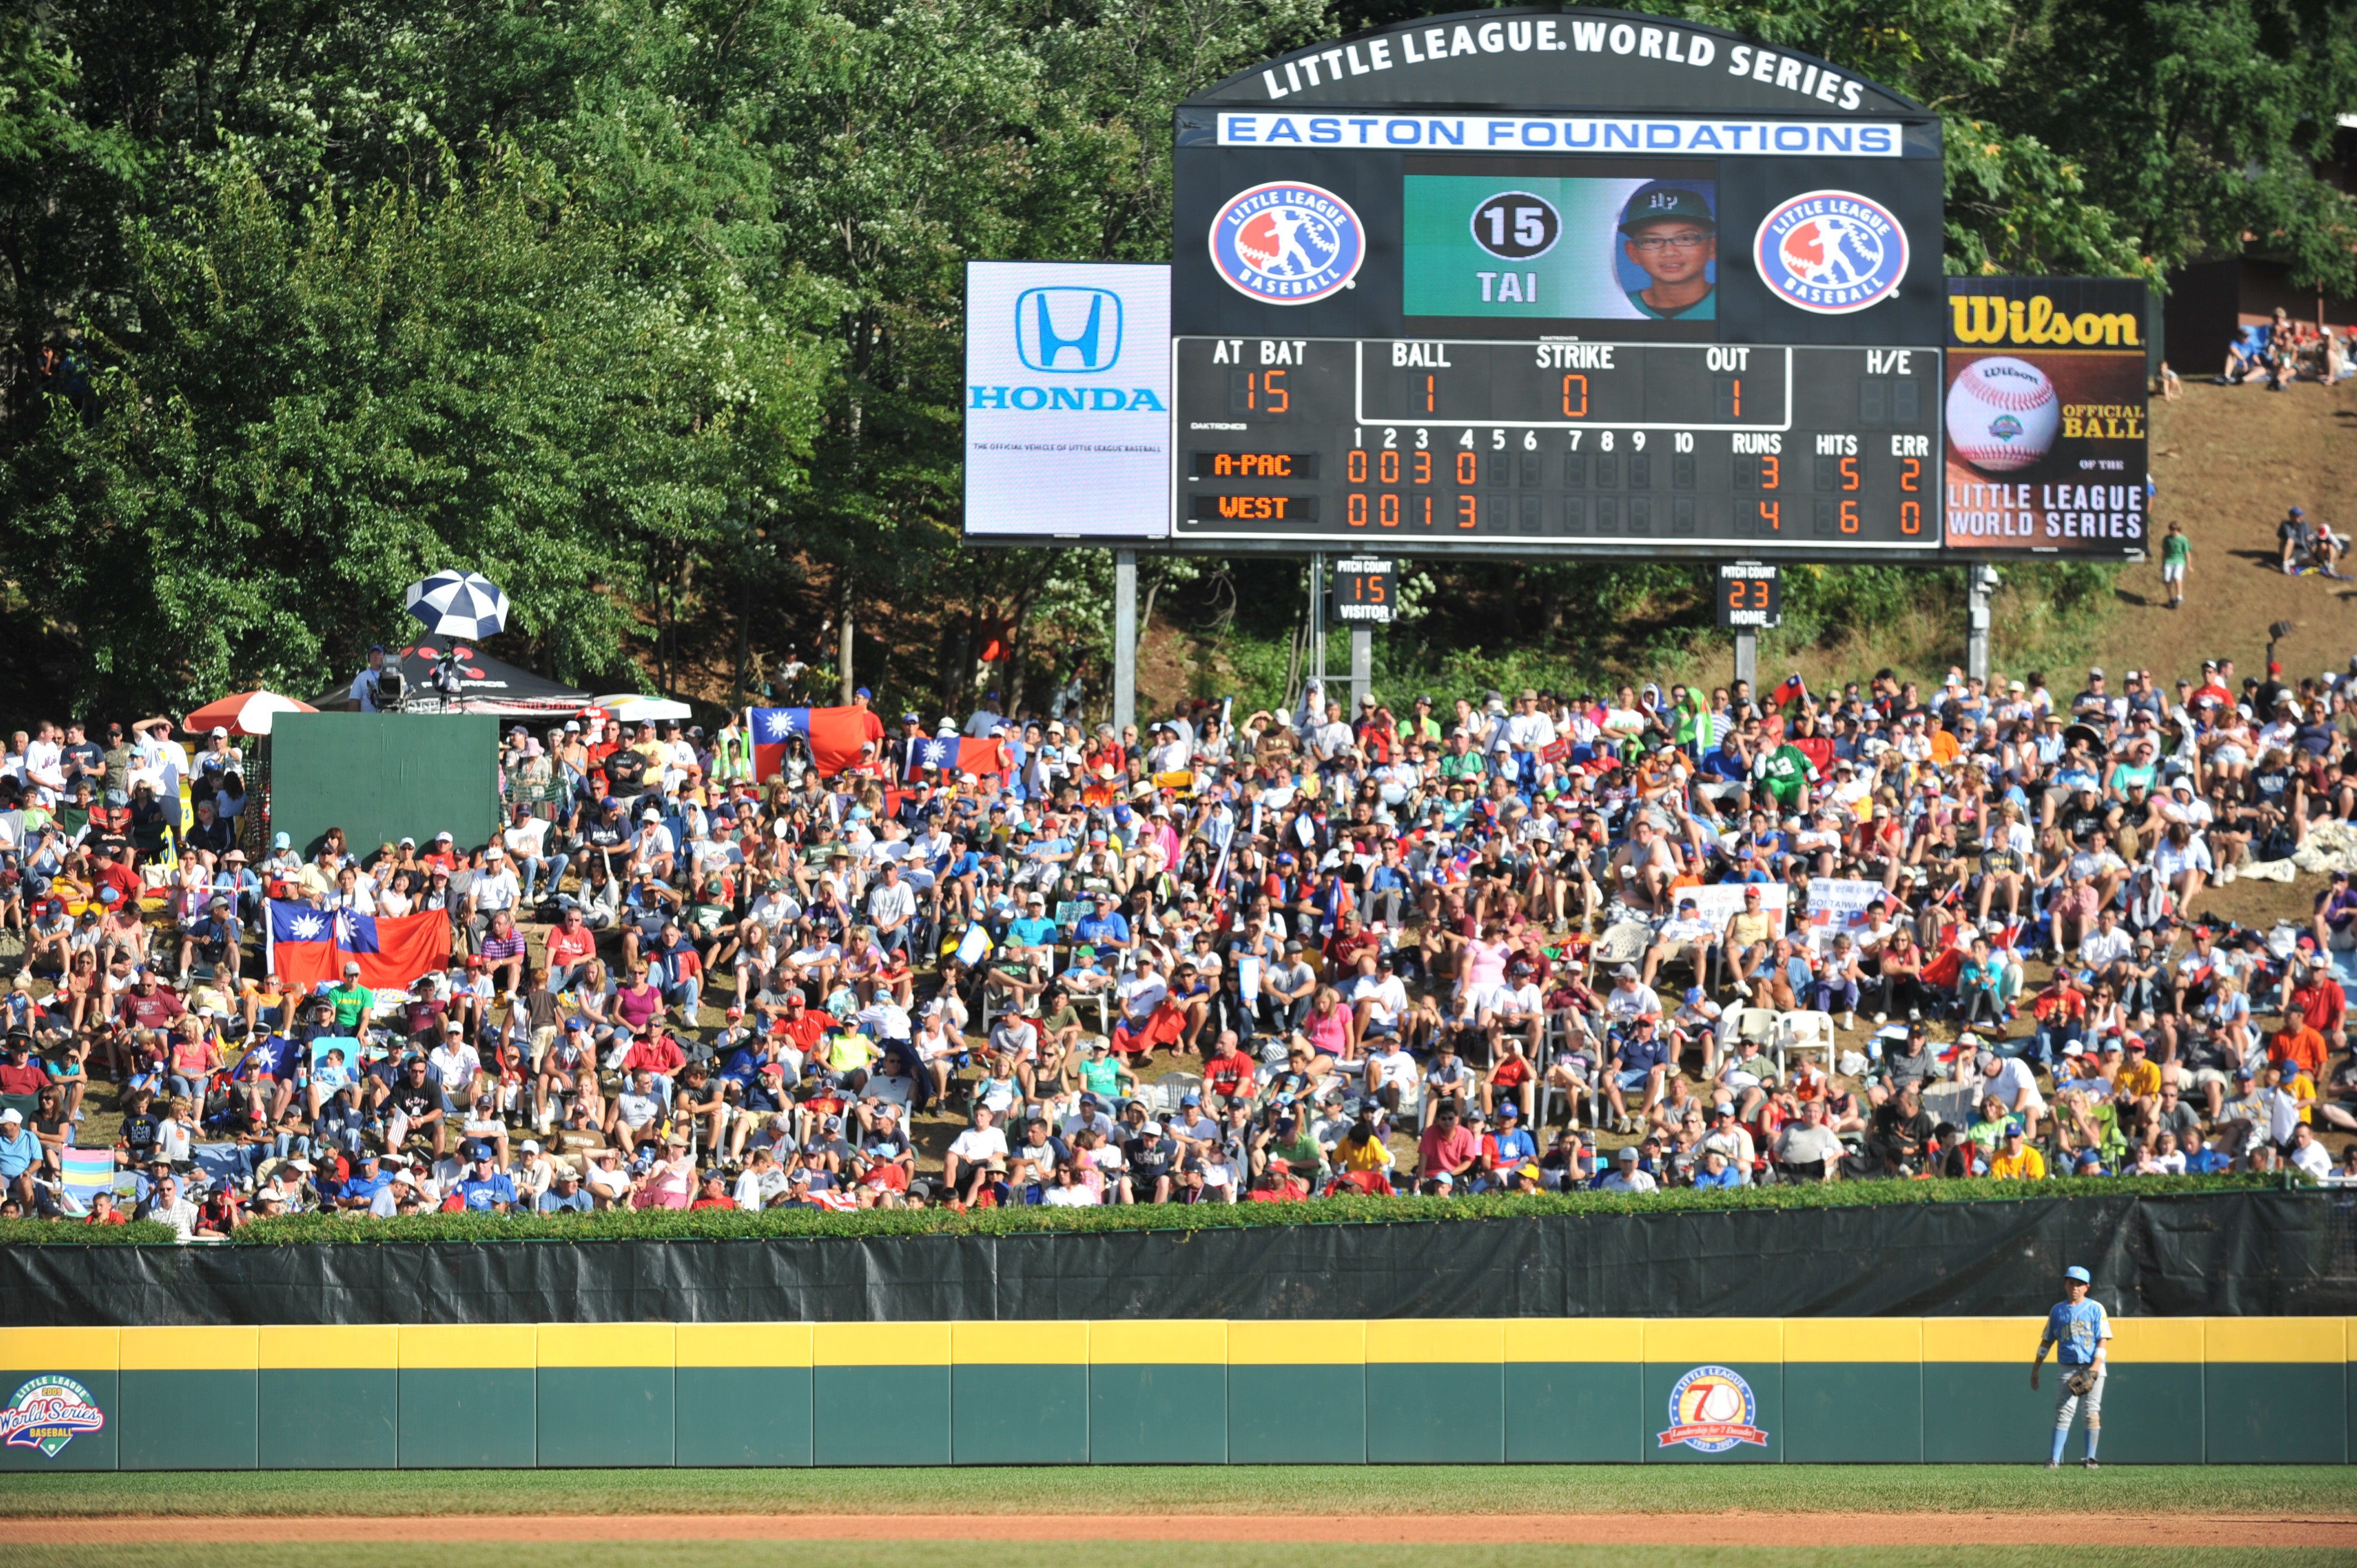 WILLIAMSPORT, PA - AUGUST 30: Fans of the little league world series watch the game between California (Chula Vista)and Asia Pacific (Taoyuan, Taiwan) in the little league world series final at Lamade Stadium on August 30, 2009 in Williamsport, Pennsylvan